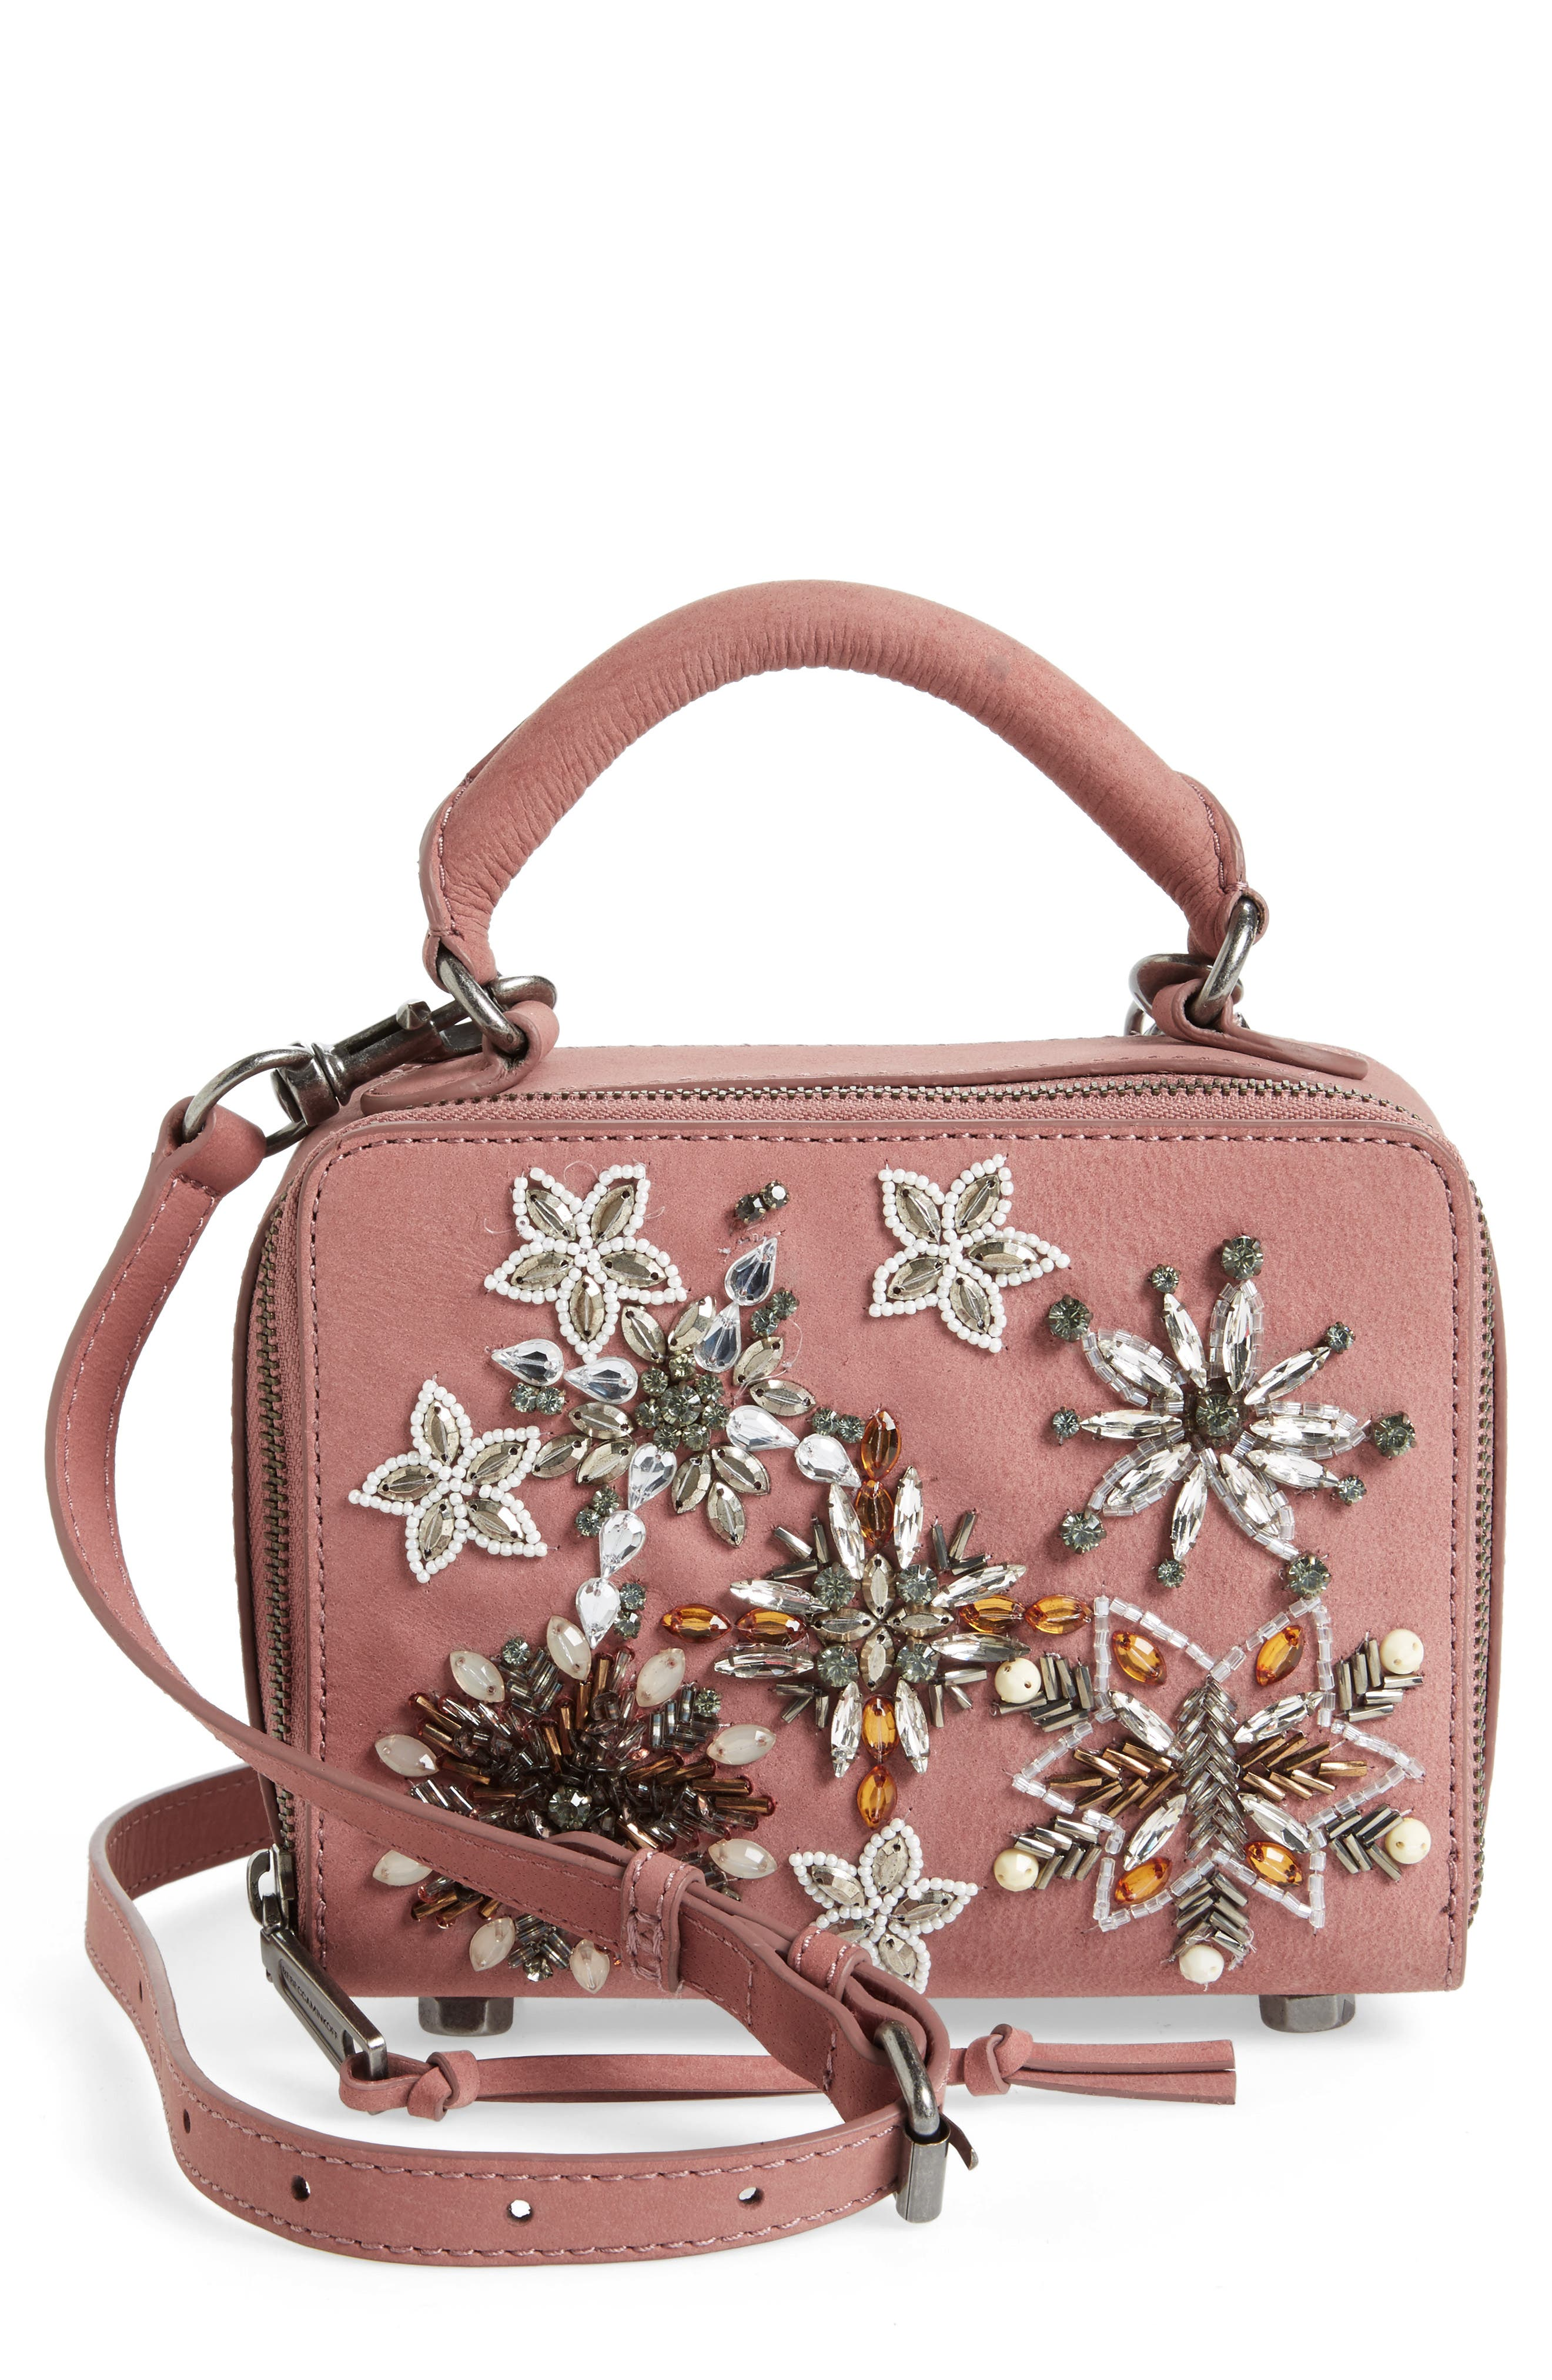 Rebecca Minkoff Embellished Box Leather Crossbody Bag